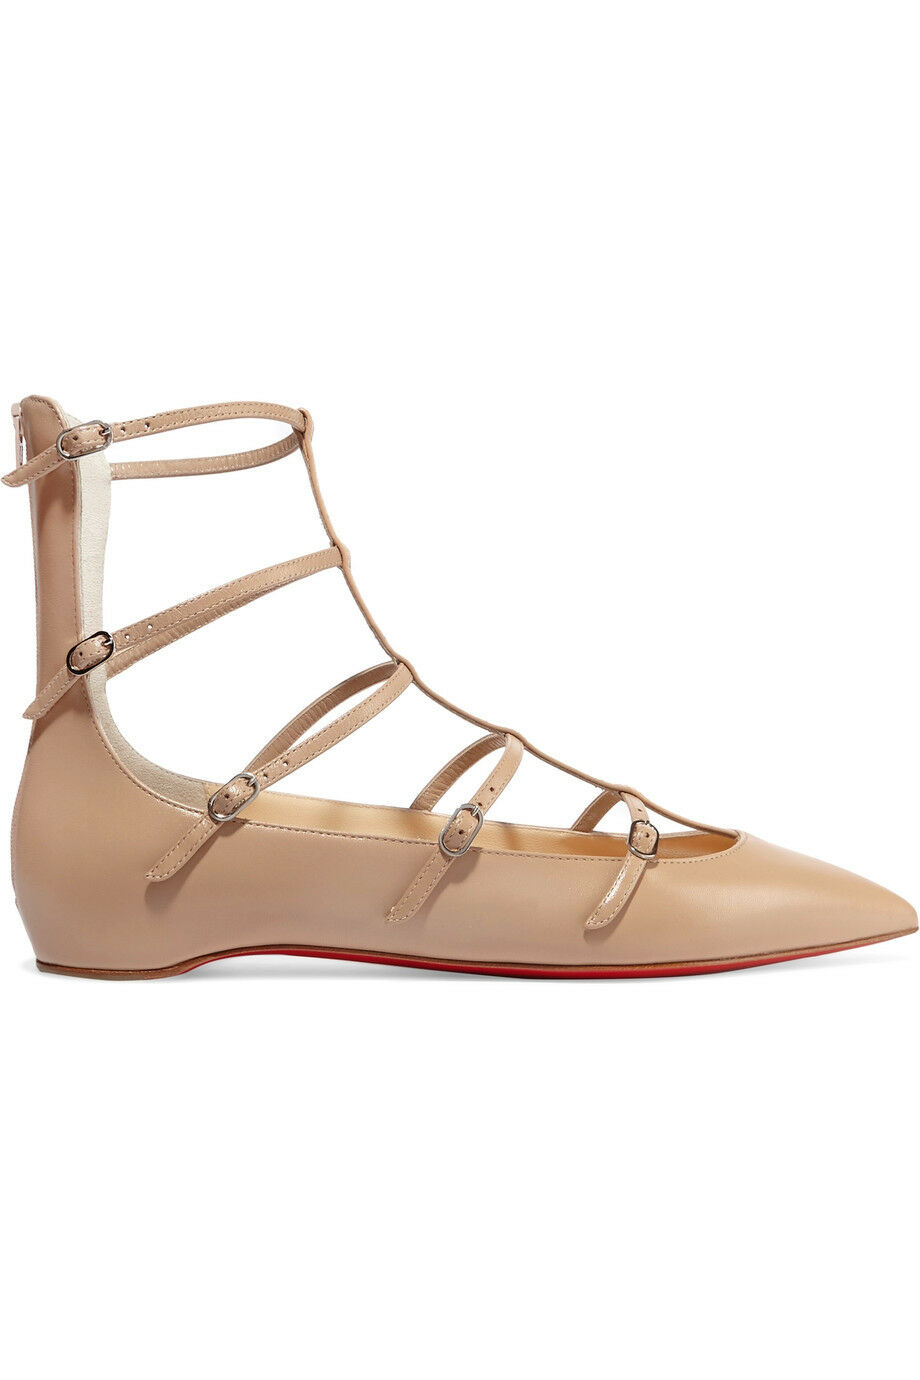 NIB Christian Louboutin Louboutin Louboutin Toerless Muse Buckled Leather Point-Toe Flats Size 37 bcdb35